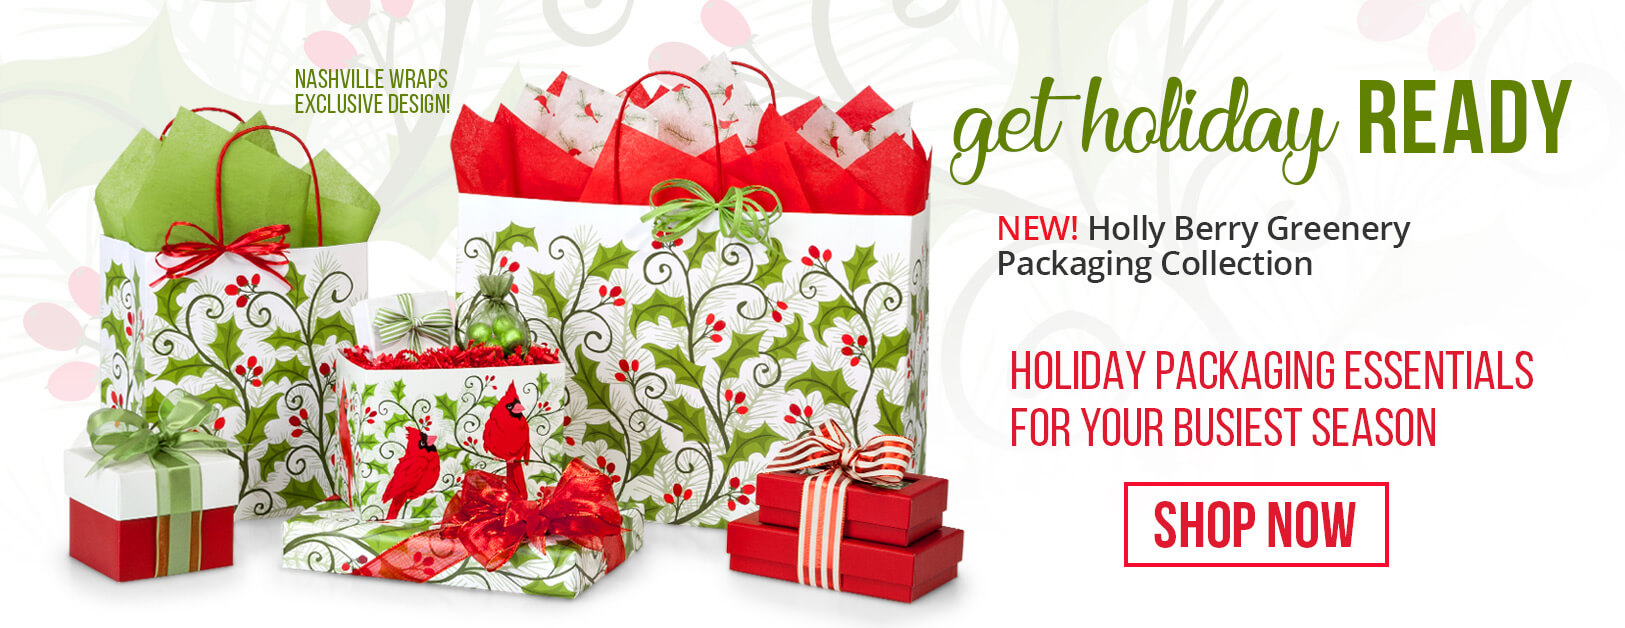 Holly Berry Greenery Shopping Bags collection from Nashville Wraps